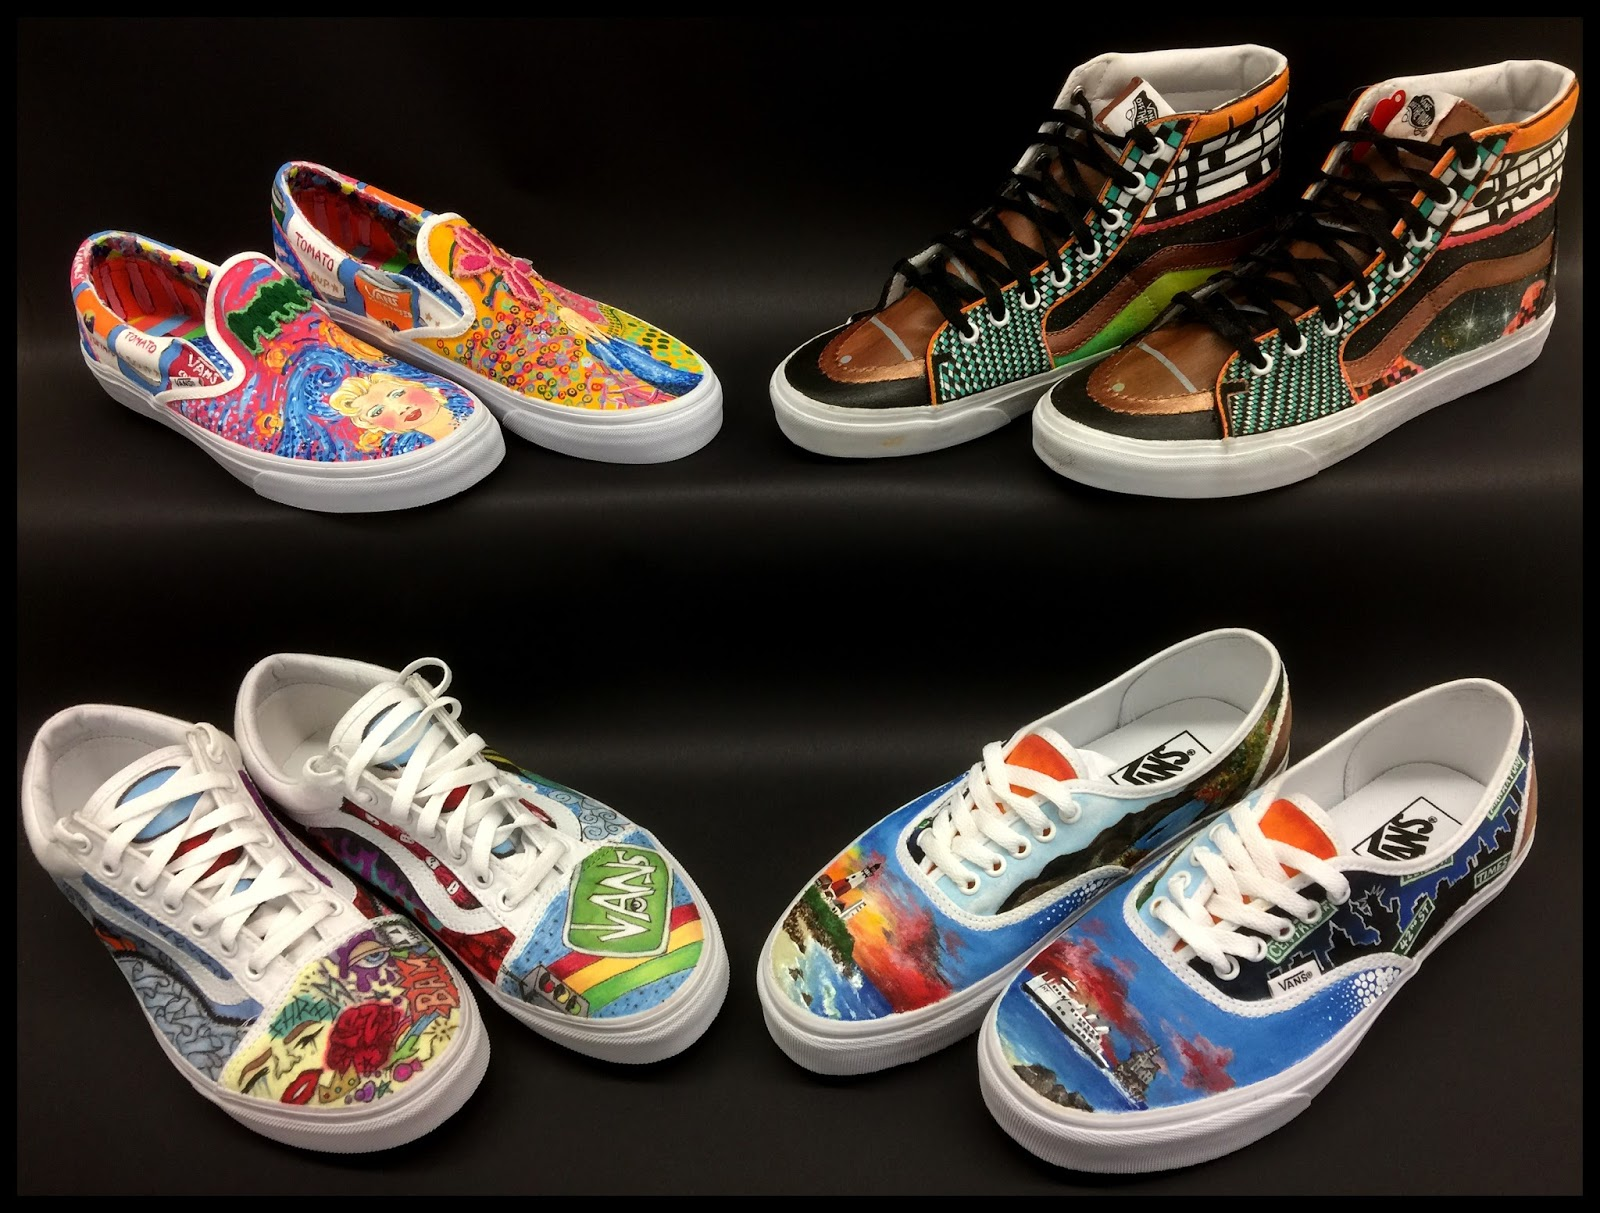 950d9b321a Today in Painting class we will be working on creating designs for the 2018 Vans  Custom Culture Contest. Above is our four shoe designs that were entered ...